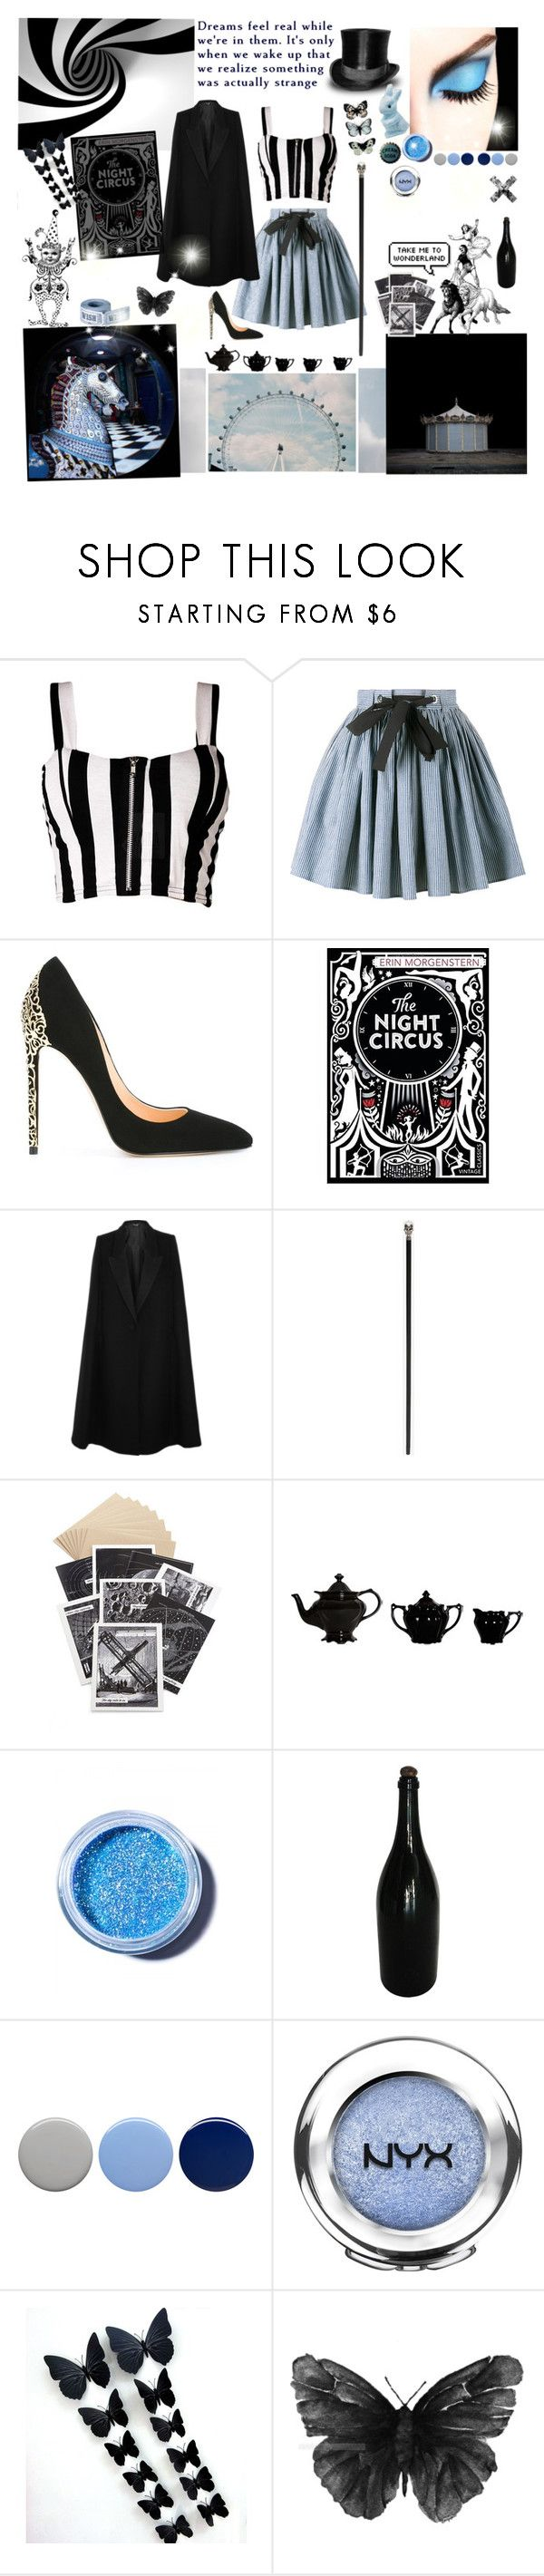 """""""2/50 Stripes"""" by not-the-average-girl ❤ liked on Polyvore featuring Boob, Miu Miu, Cerasella Milano, Bebe, STELLA McCARTNEY, Alexander McQueen, Jayson Home, Lime Crime, Burberry and NYX"""